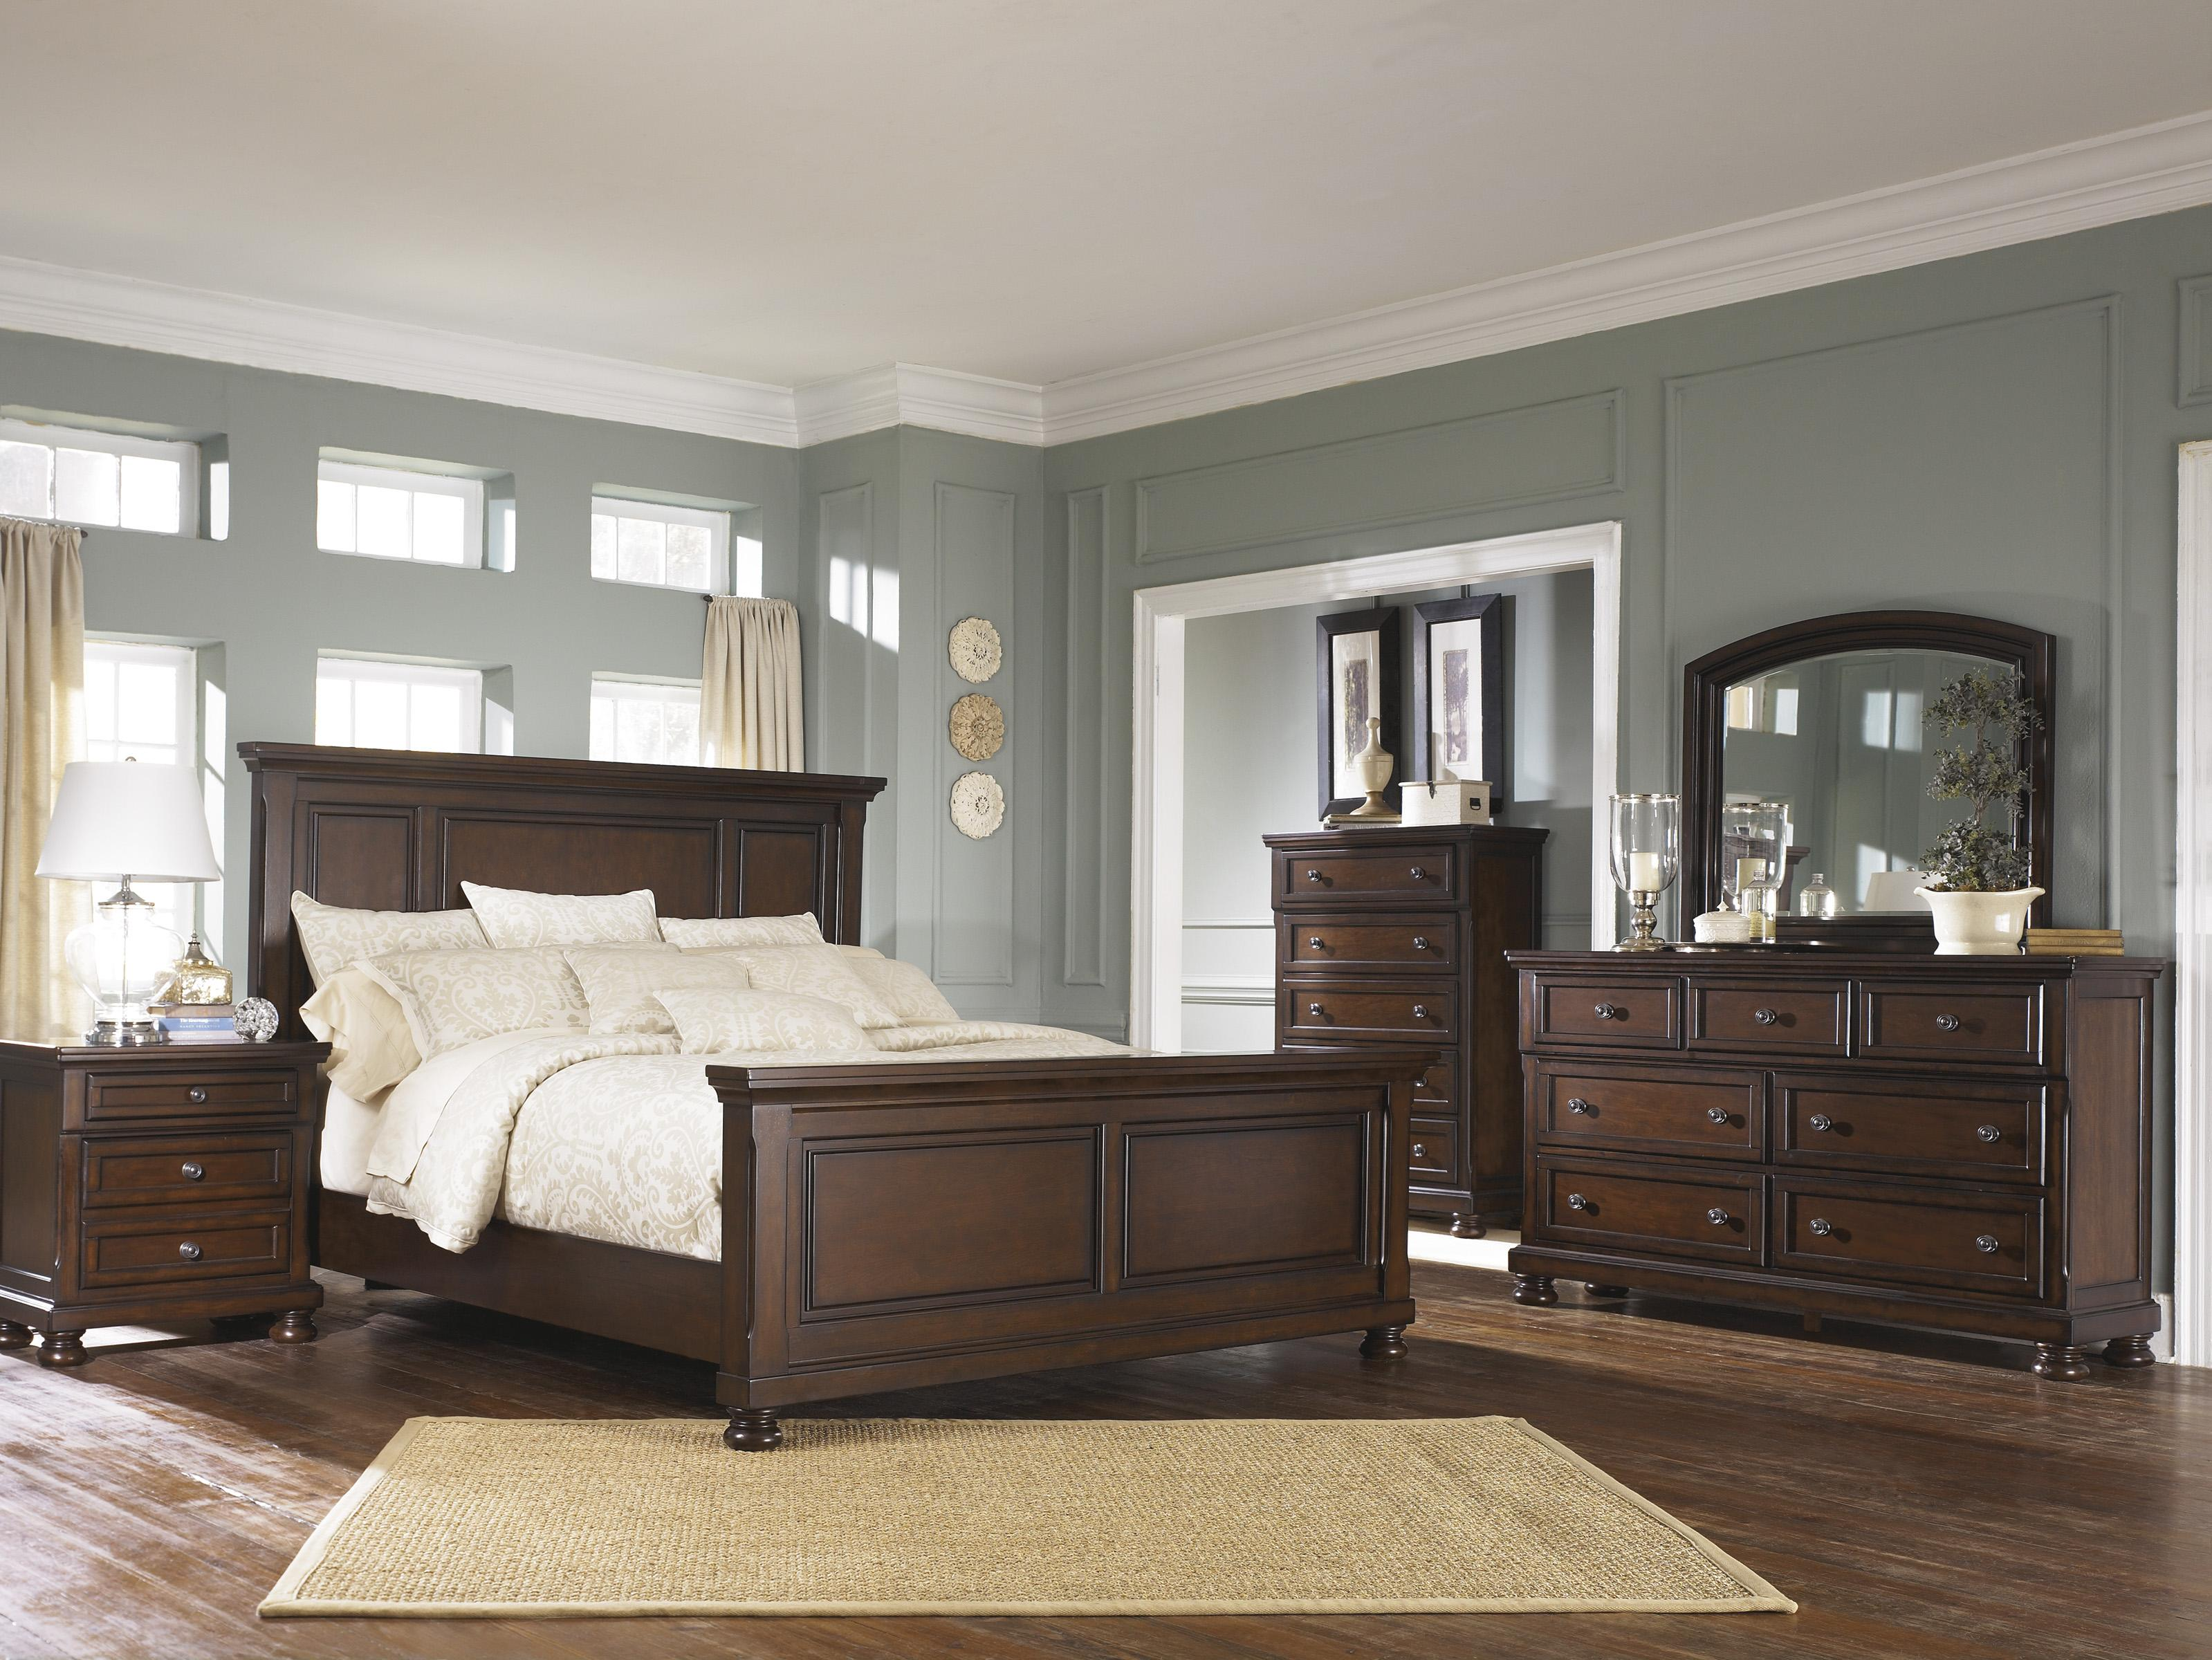 Porter Queen Bedroom Group by Ashley Furniture at Beck's Furniture